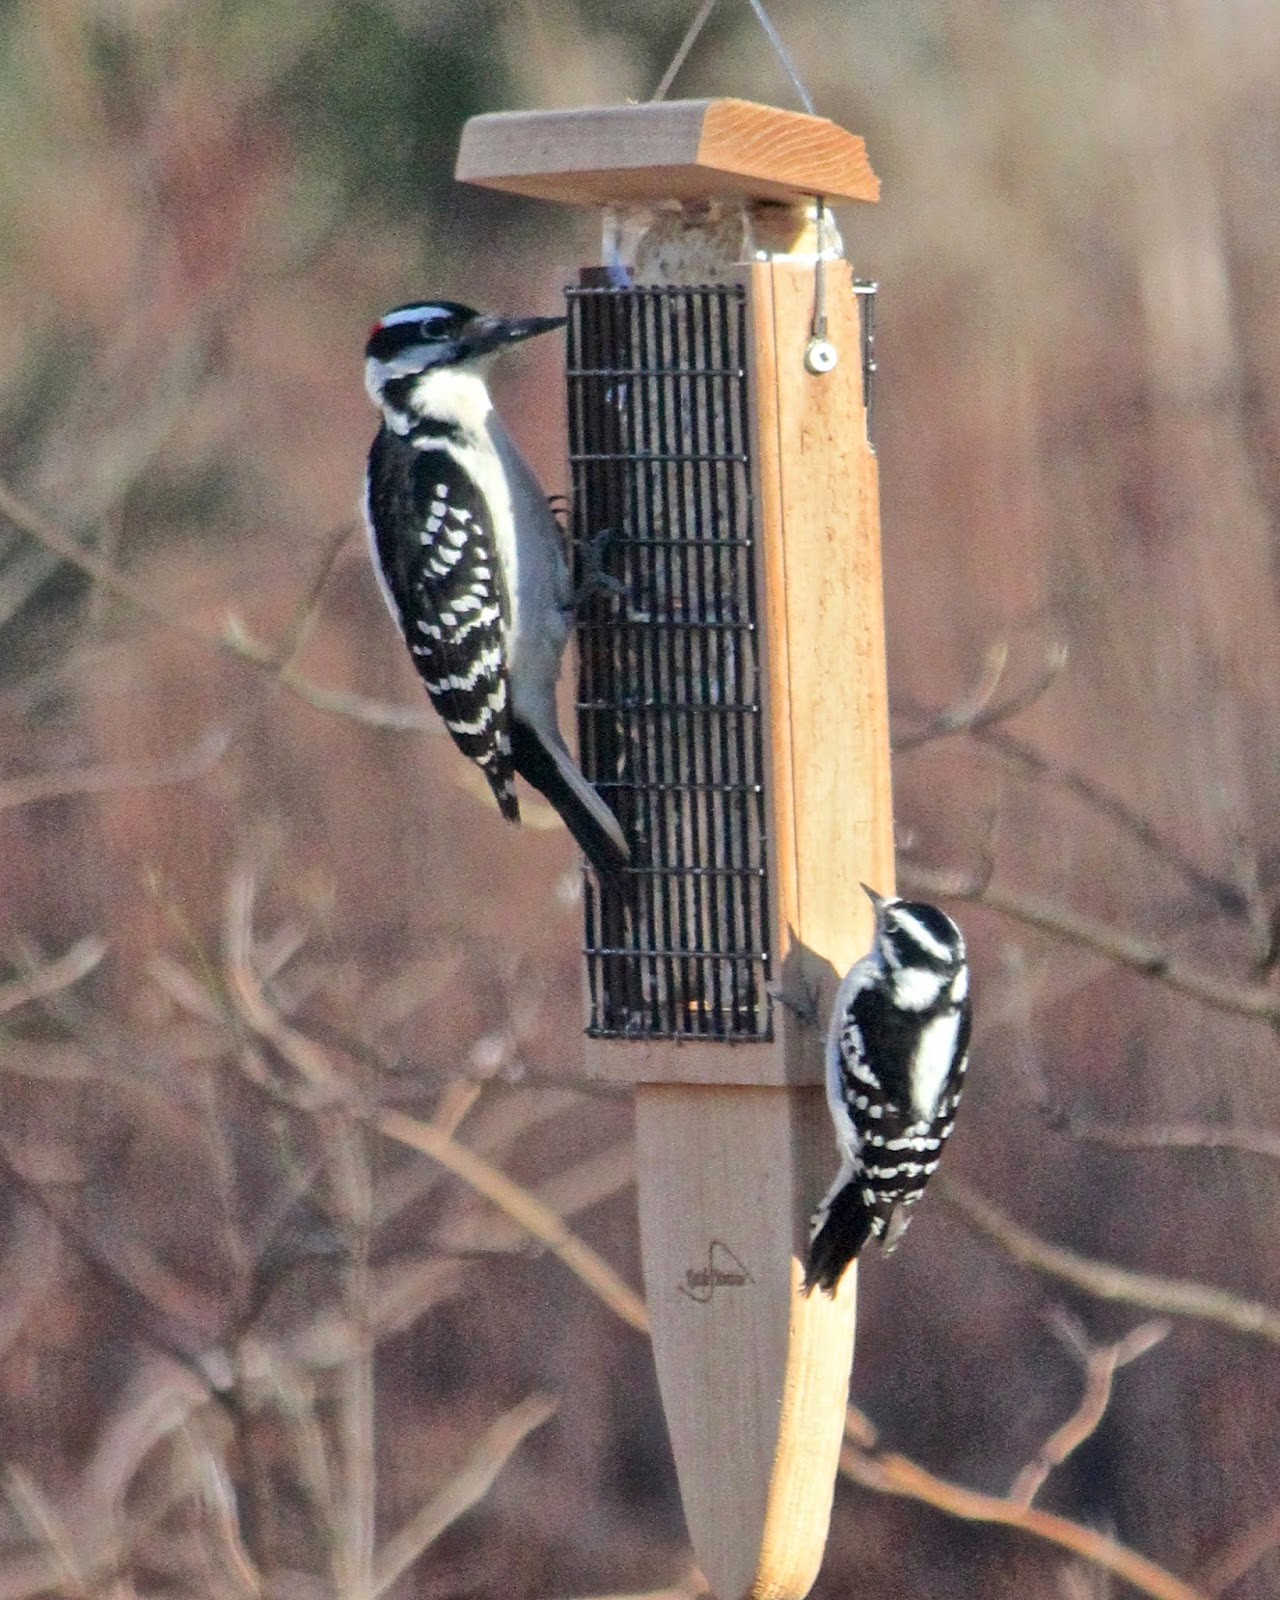 How to Tell the Difference Between Downy and Hairy Woodpeckers